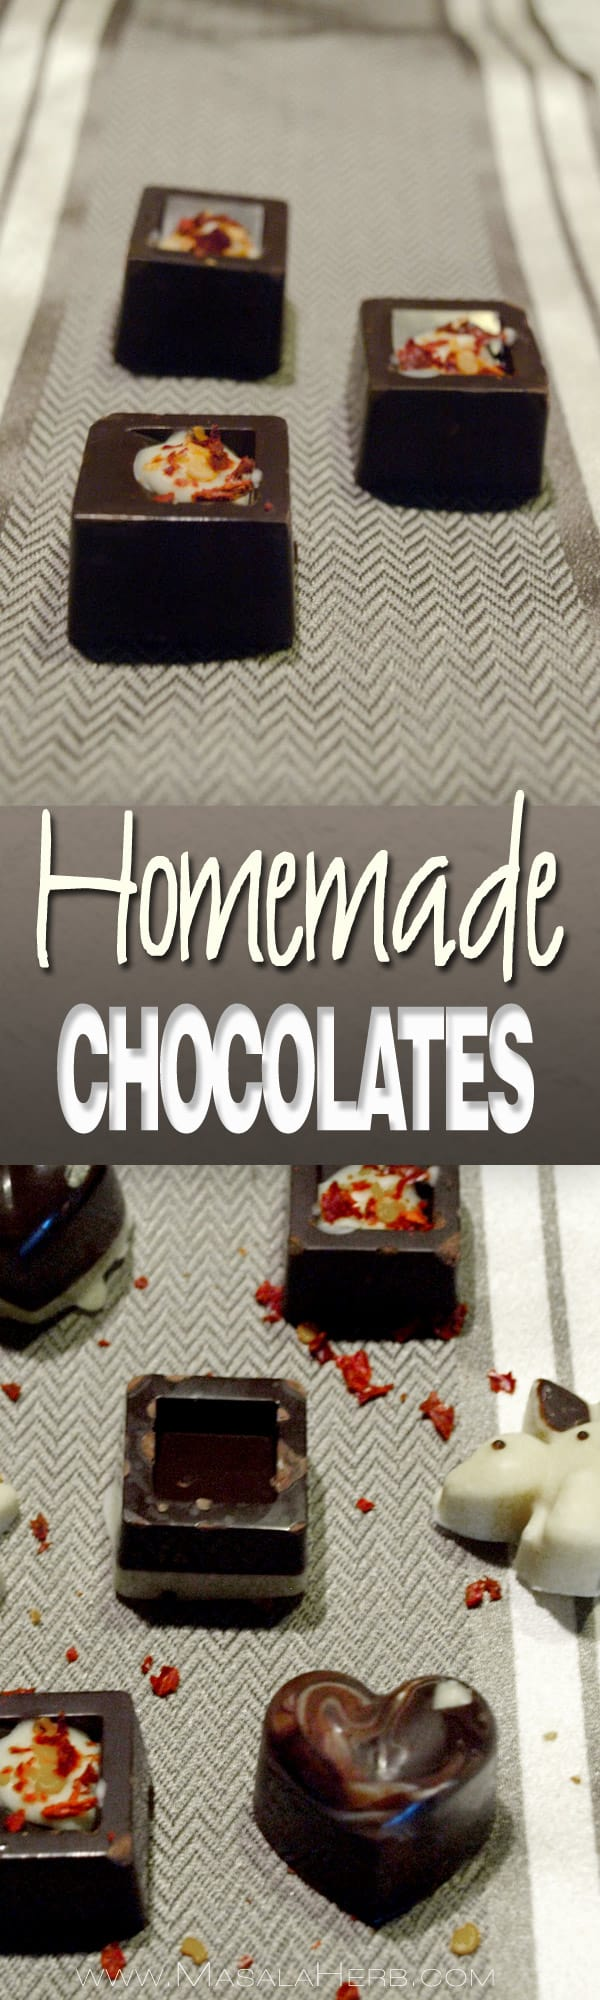 Easy Homemade Chocolate Recipe - How to incl. various flavors [healthier]. Make different homemade chocolate shapes with different flavor combinations and decorations. To gift for celebrations as a gift as for example for valentines days, christmas, baptism, birthday etc. www.MasalaHerb.com #DIY #chocolate #homemade #masalaherb